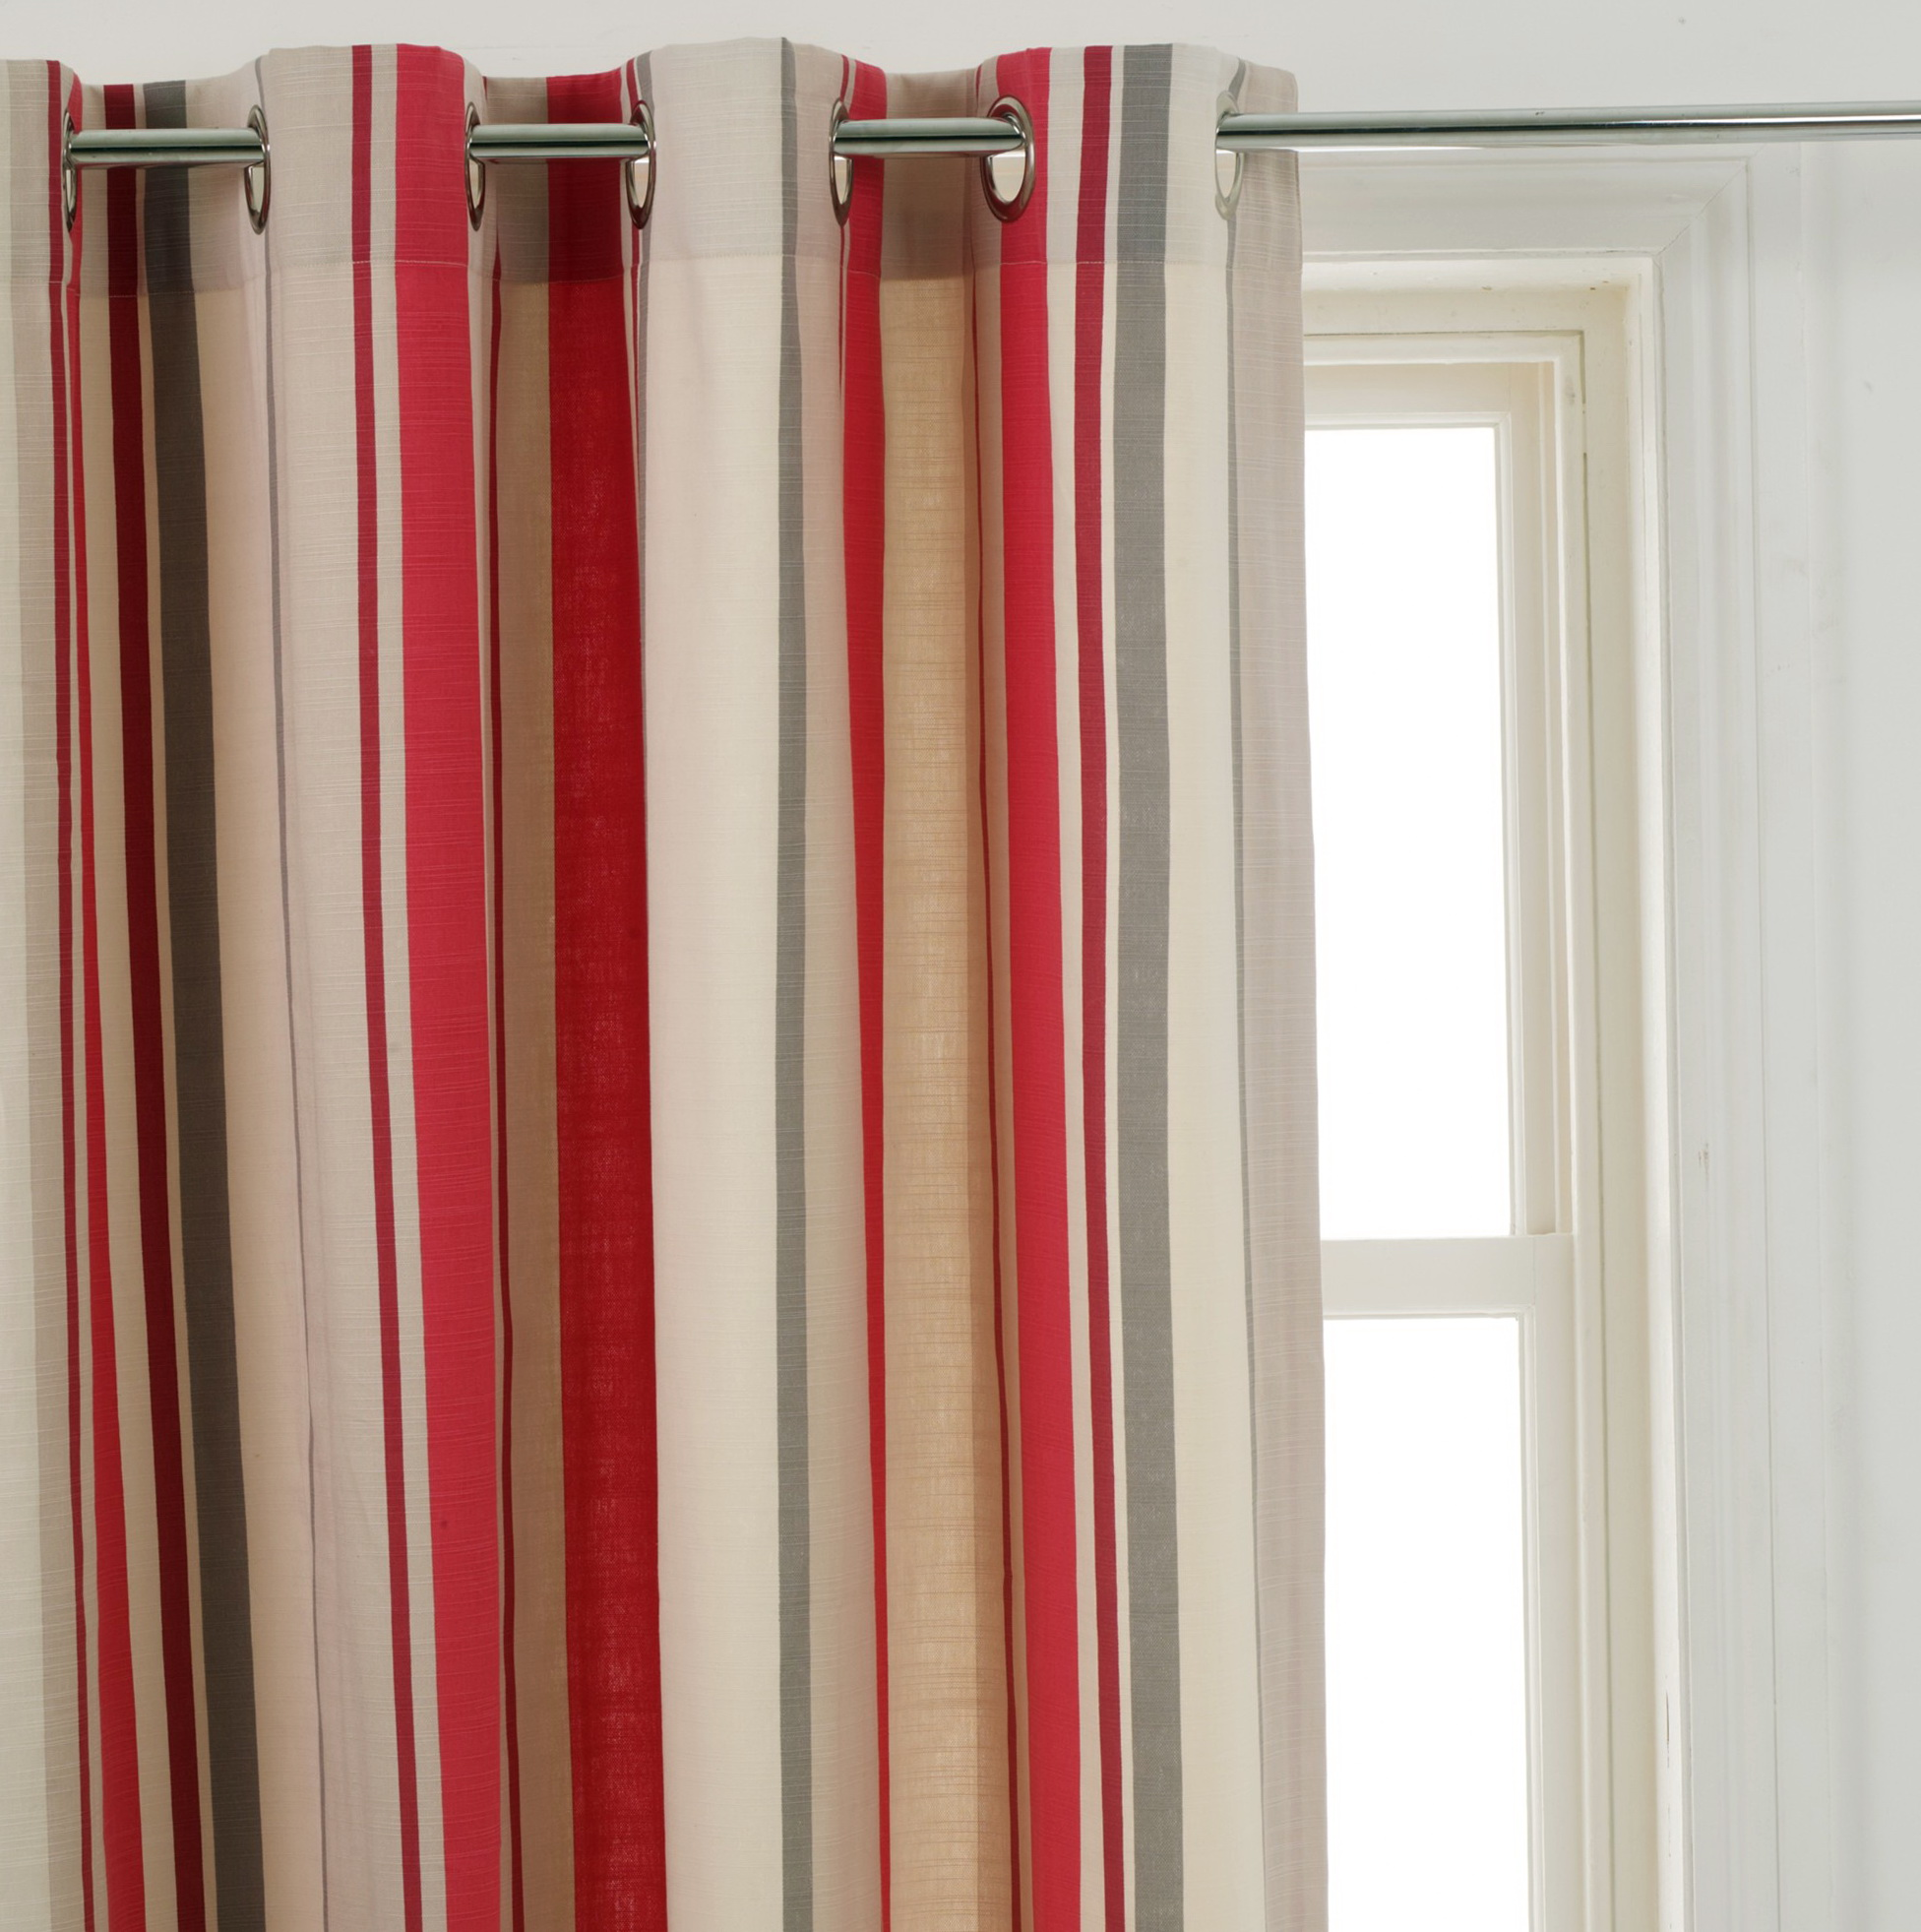 Best Place To Buy Curtains Online